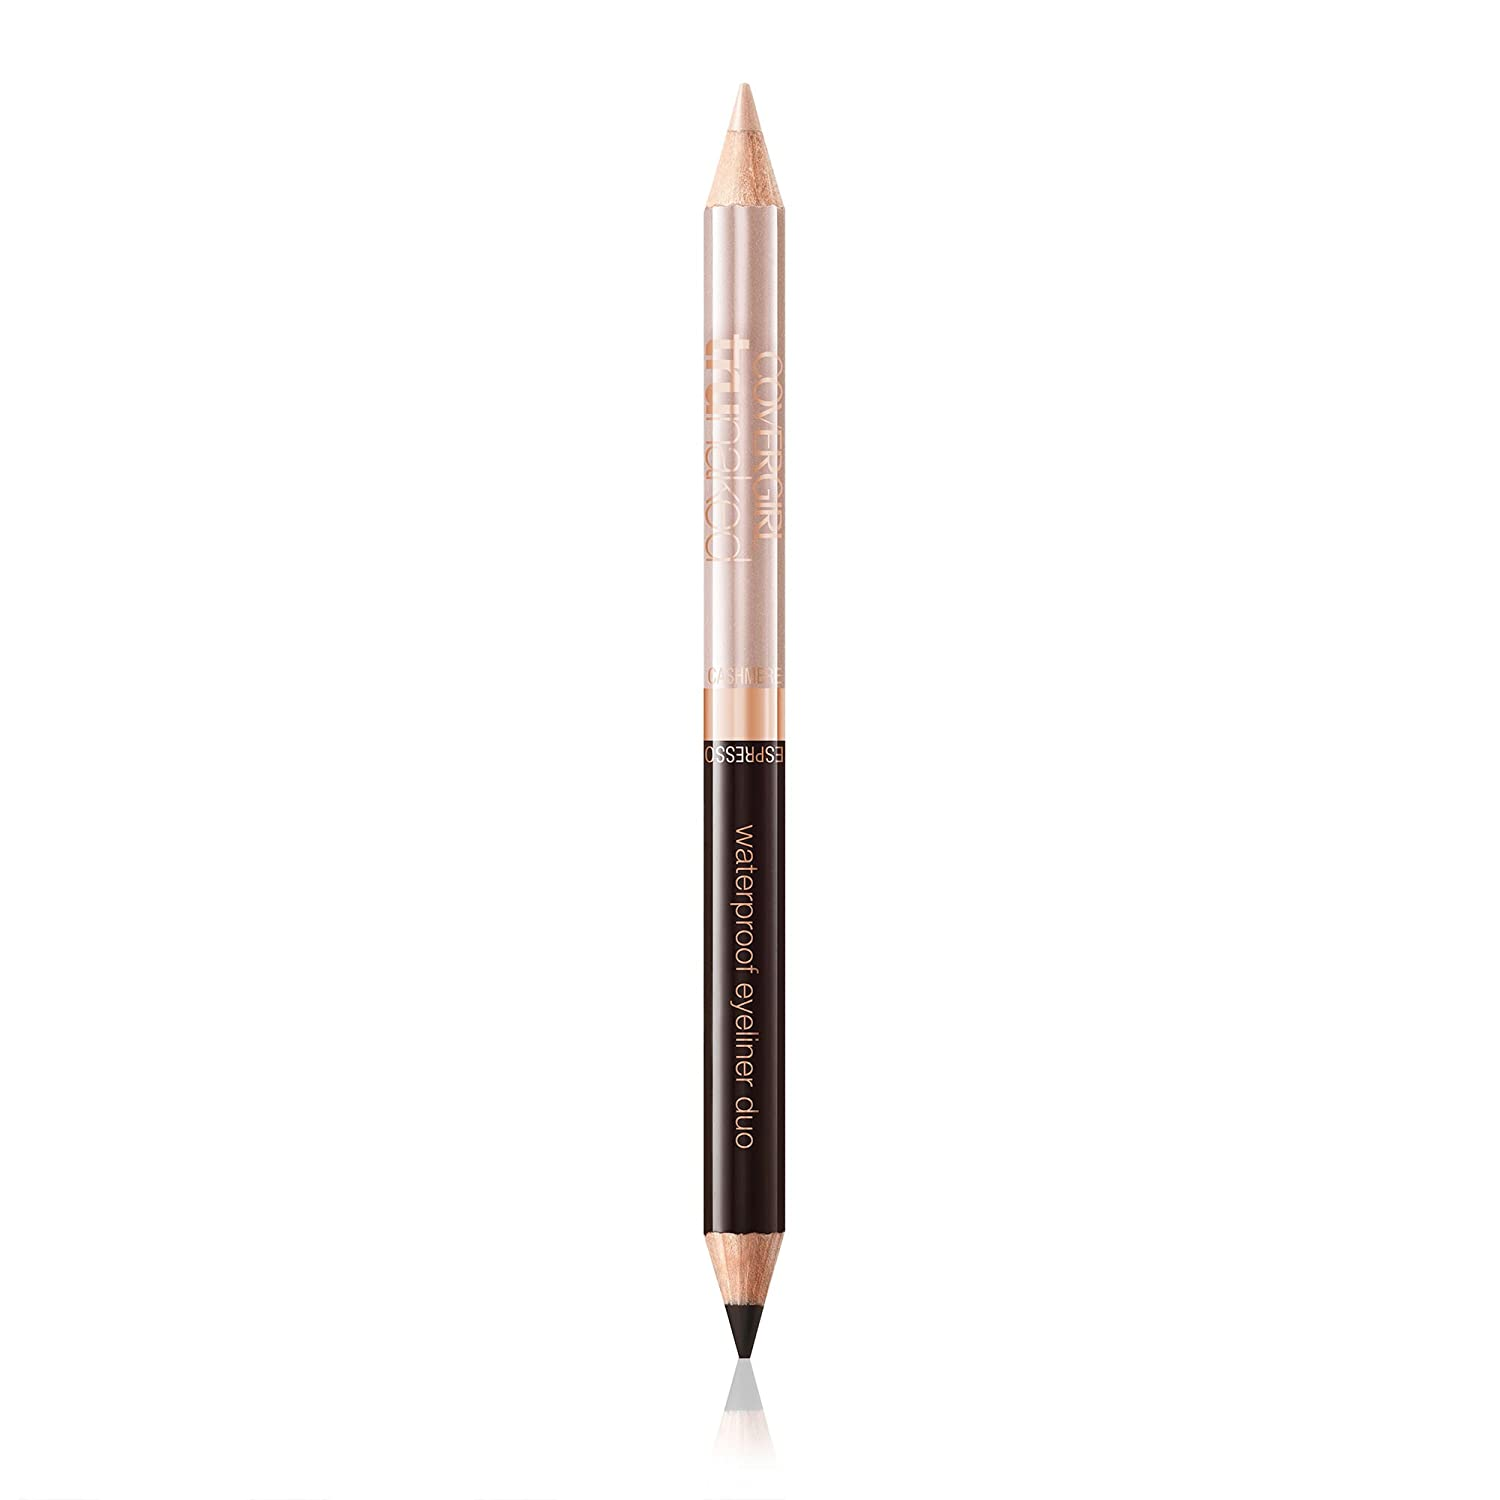 COVERGIRL truNaked Waterproof Eyeliner Duo Cashmere/Espresso, .03 oz (packaging may vary)